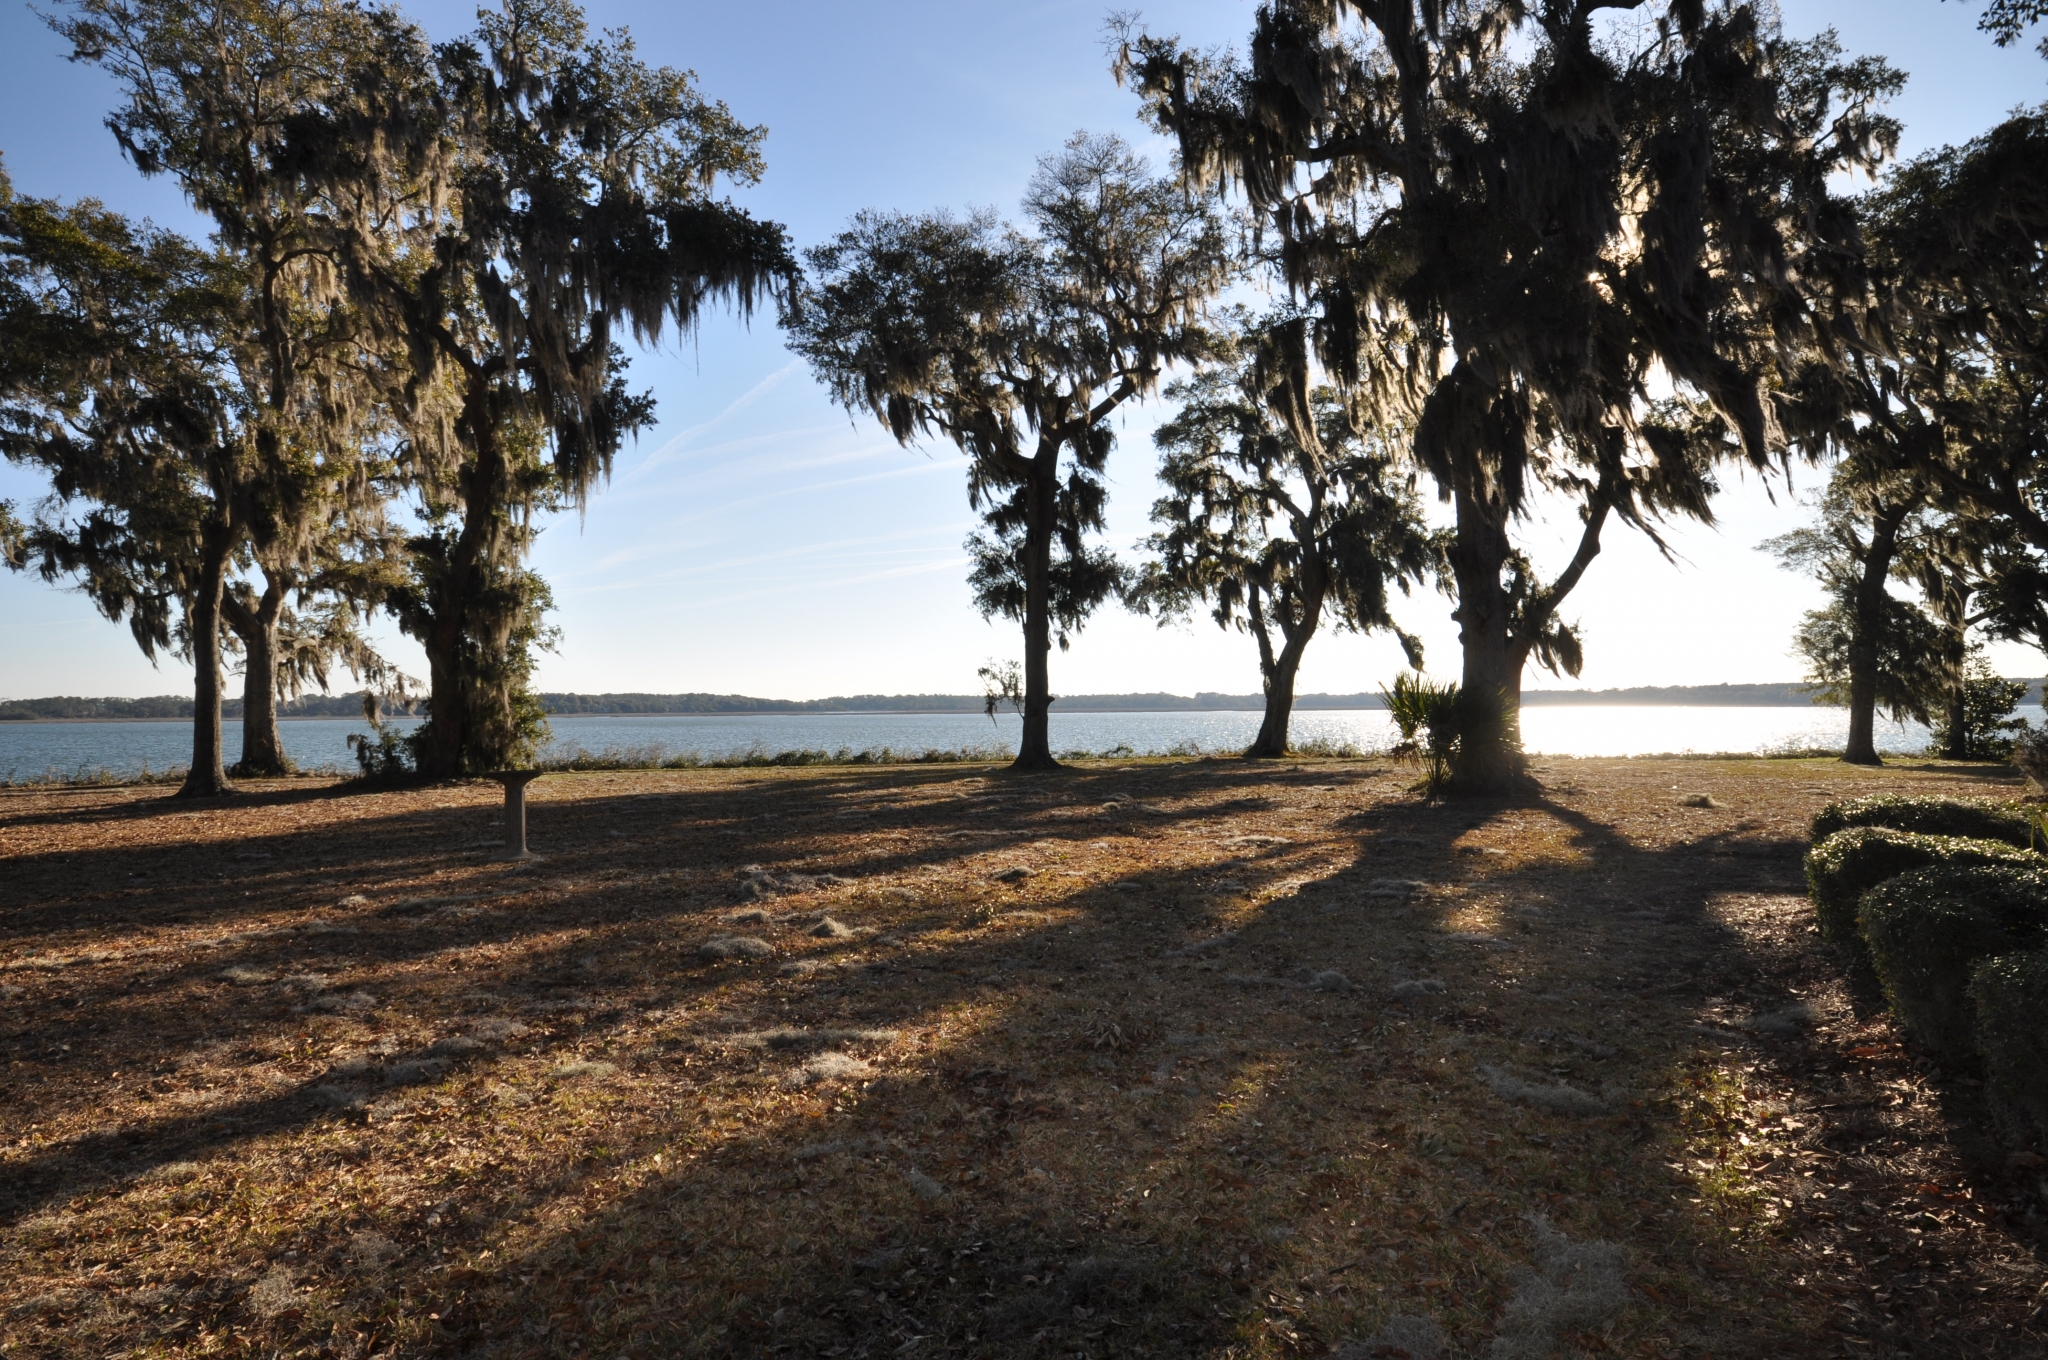 Sunset View of Ocean | Beaufort SC Waterfront View | Trees in Sunshine | Horizon View